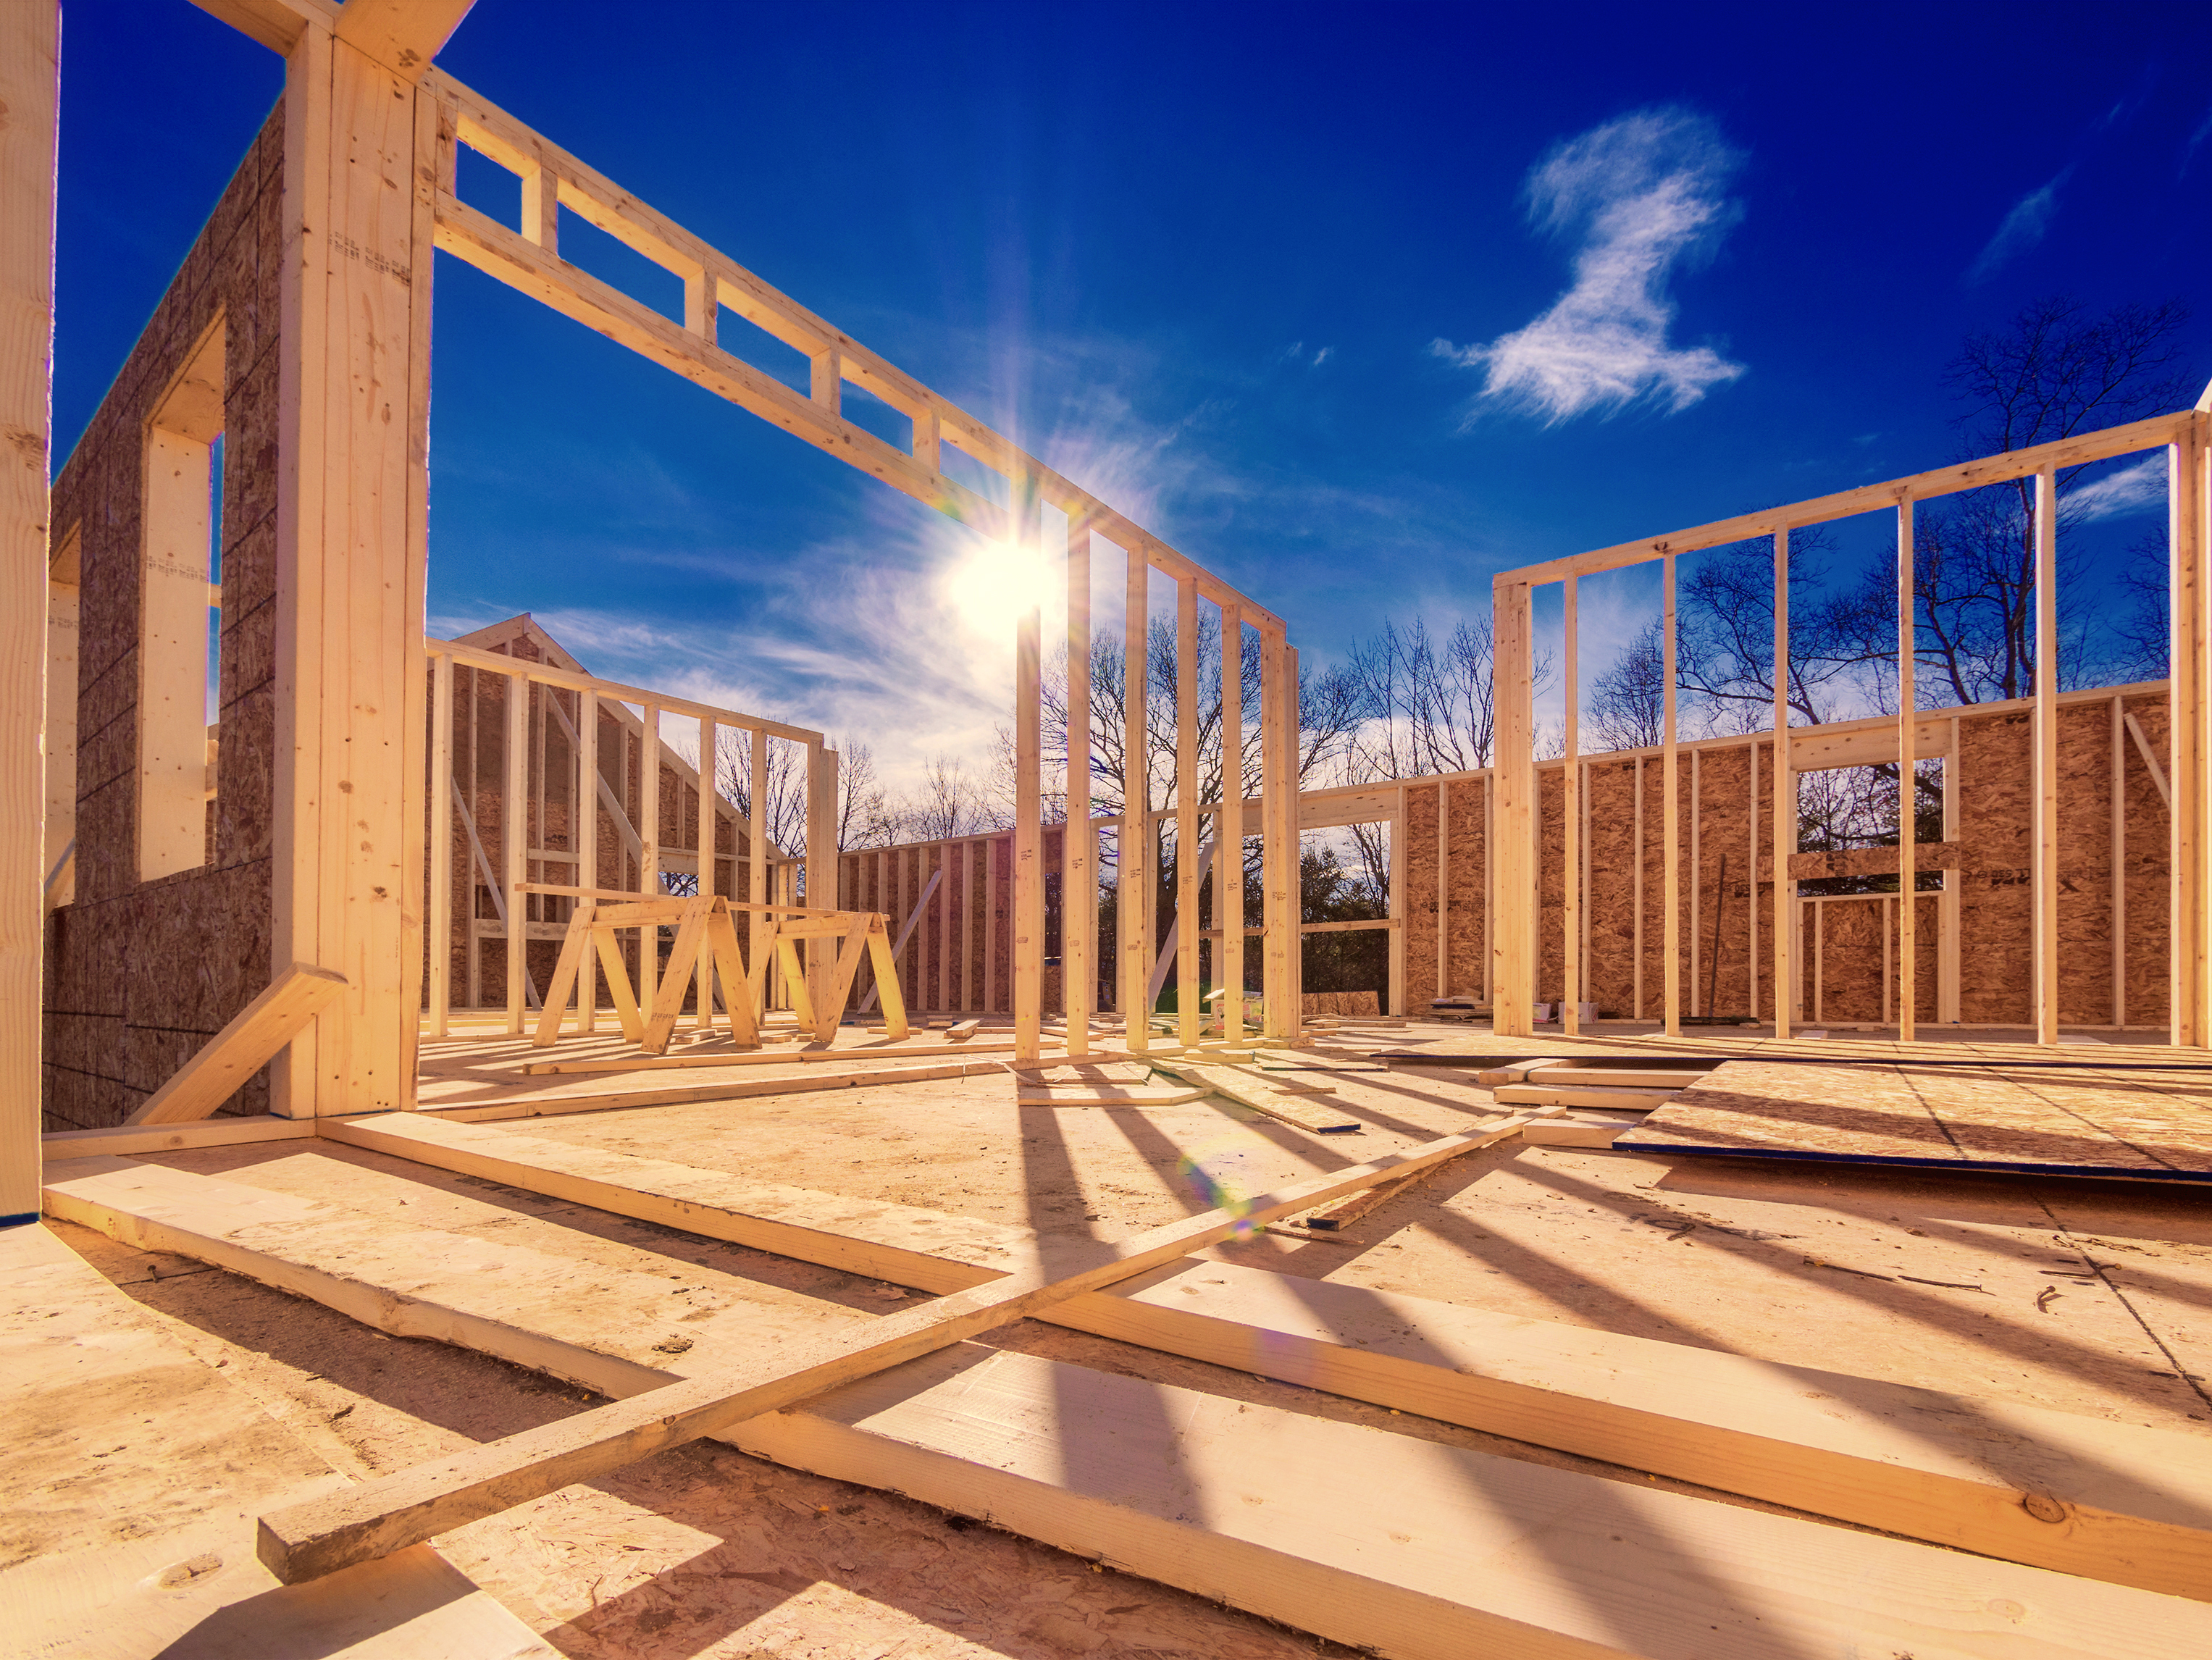 Commercial framing roofing turnkey building contractor for Building a house in mn